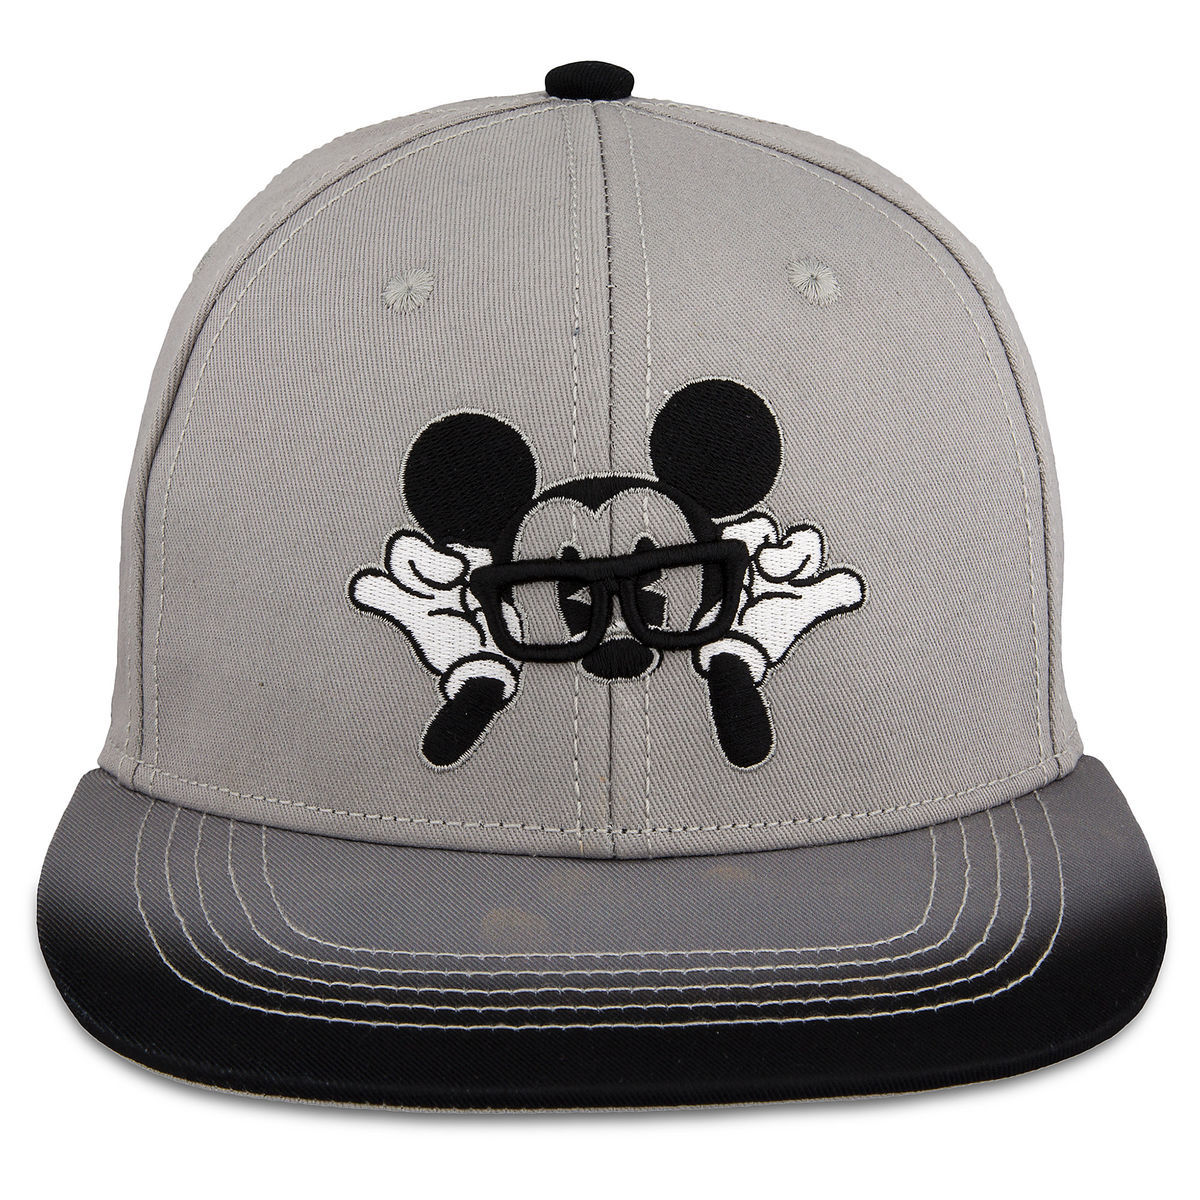 37dac7bf098 Product Image of Mickey Mouse Timeless Hipster Baseball Hat for Adults   1